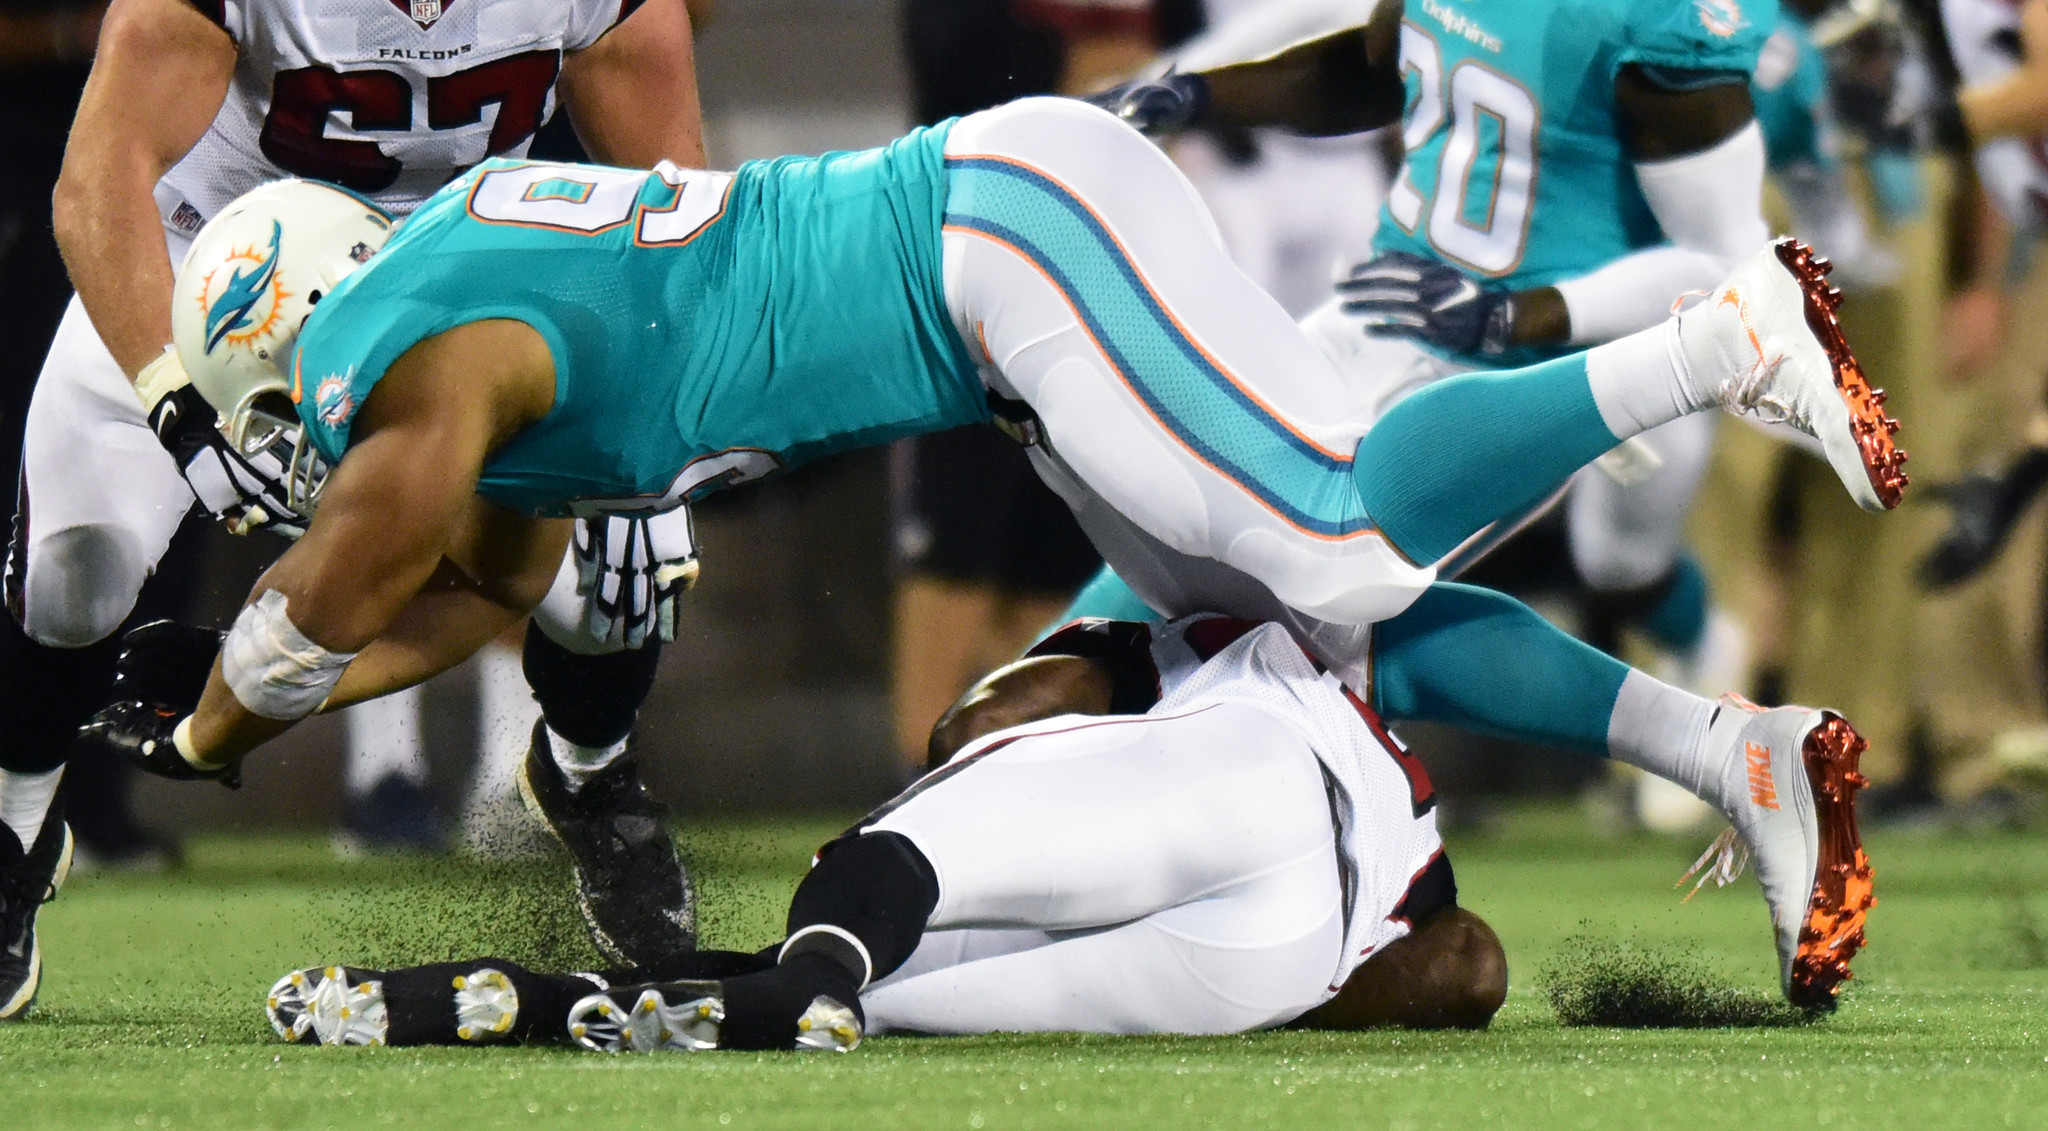 Sfl-perkins-dolphins-preseason-unit-by-unit-analysis-commentary-20160830